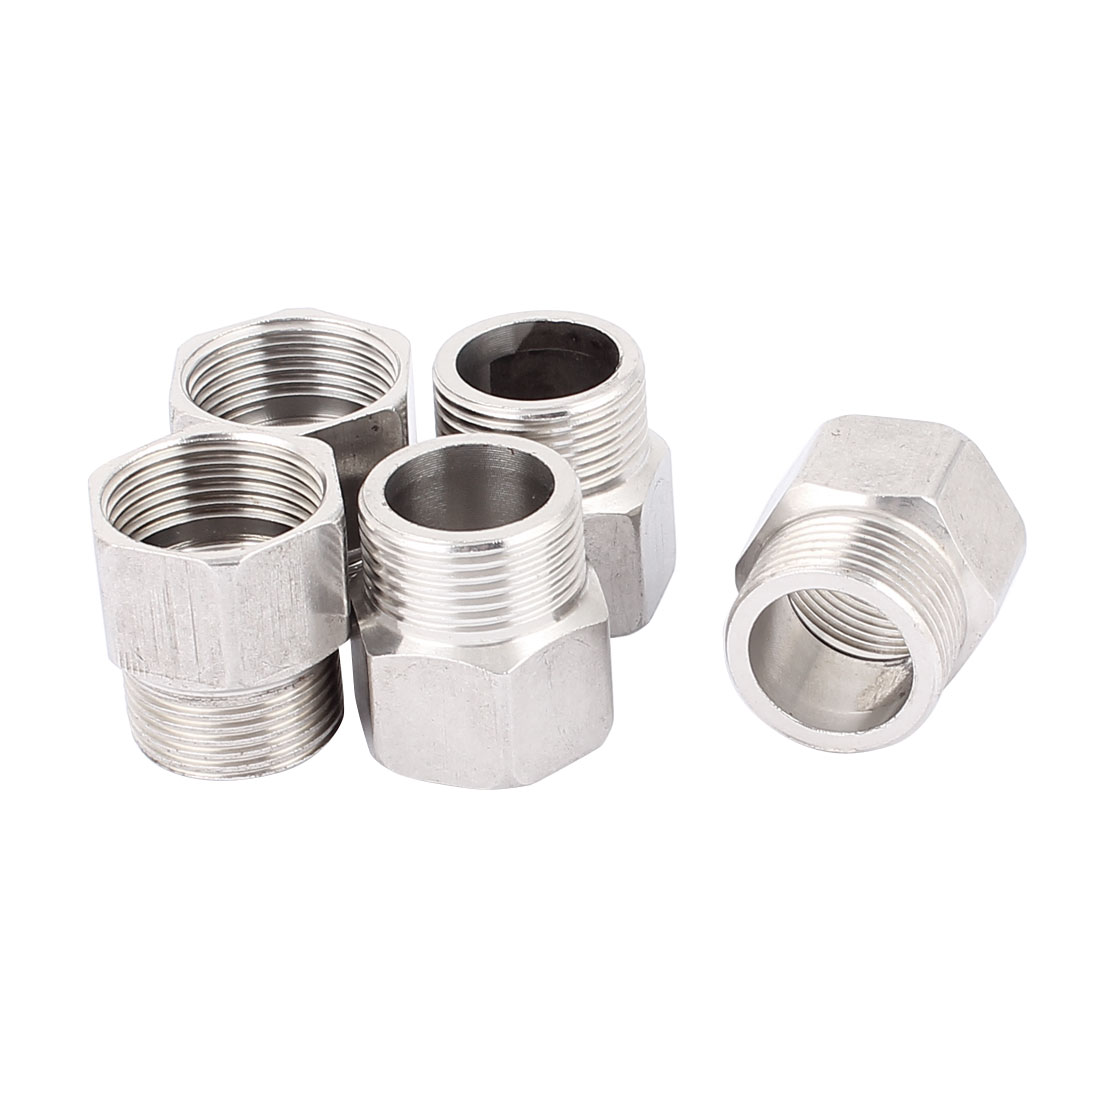 3/4BSP Male to 3/4BSP Female Threaded Hex Reducing Bushing Pipe Tube Adapter 5 Pcs